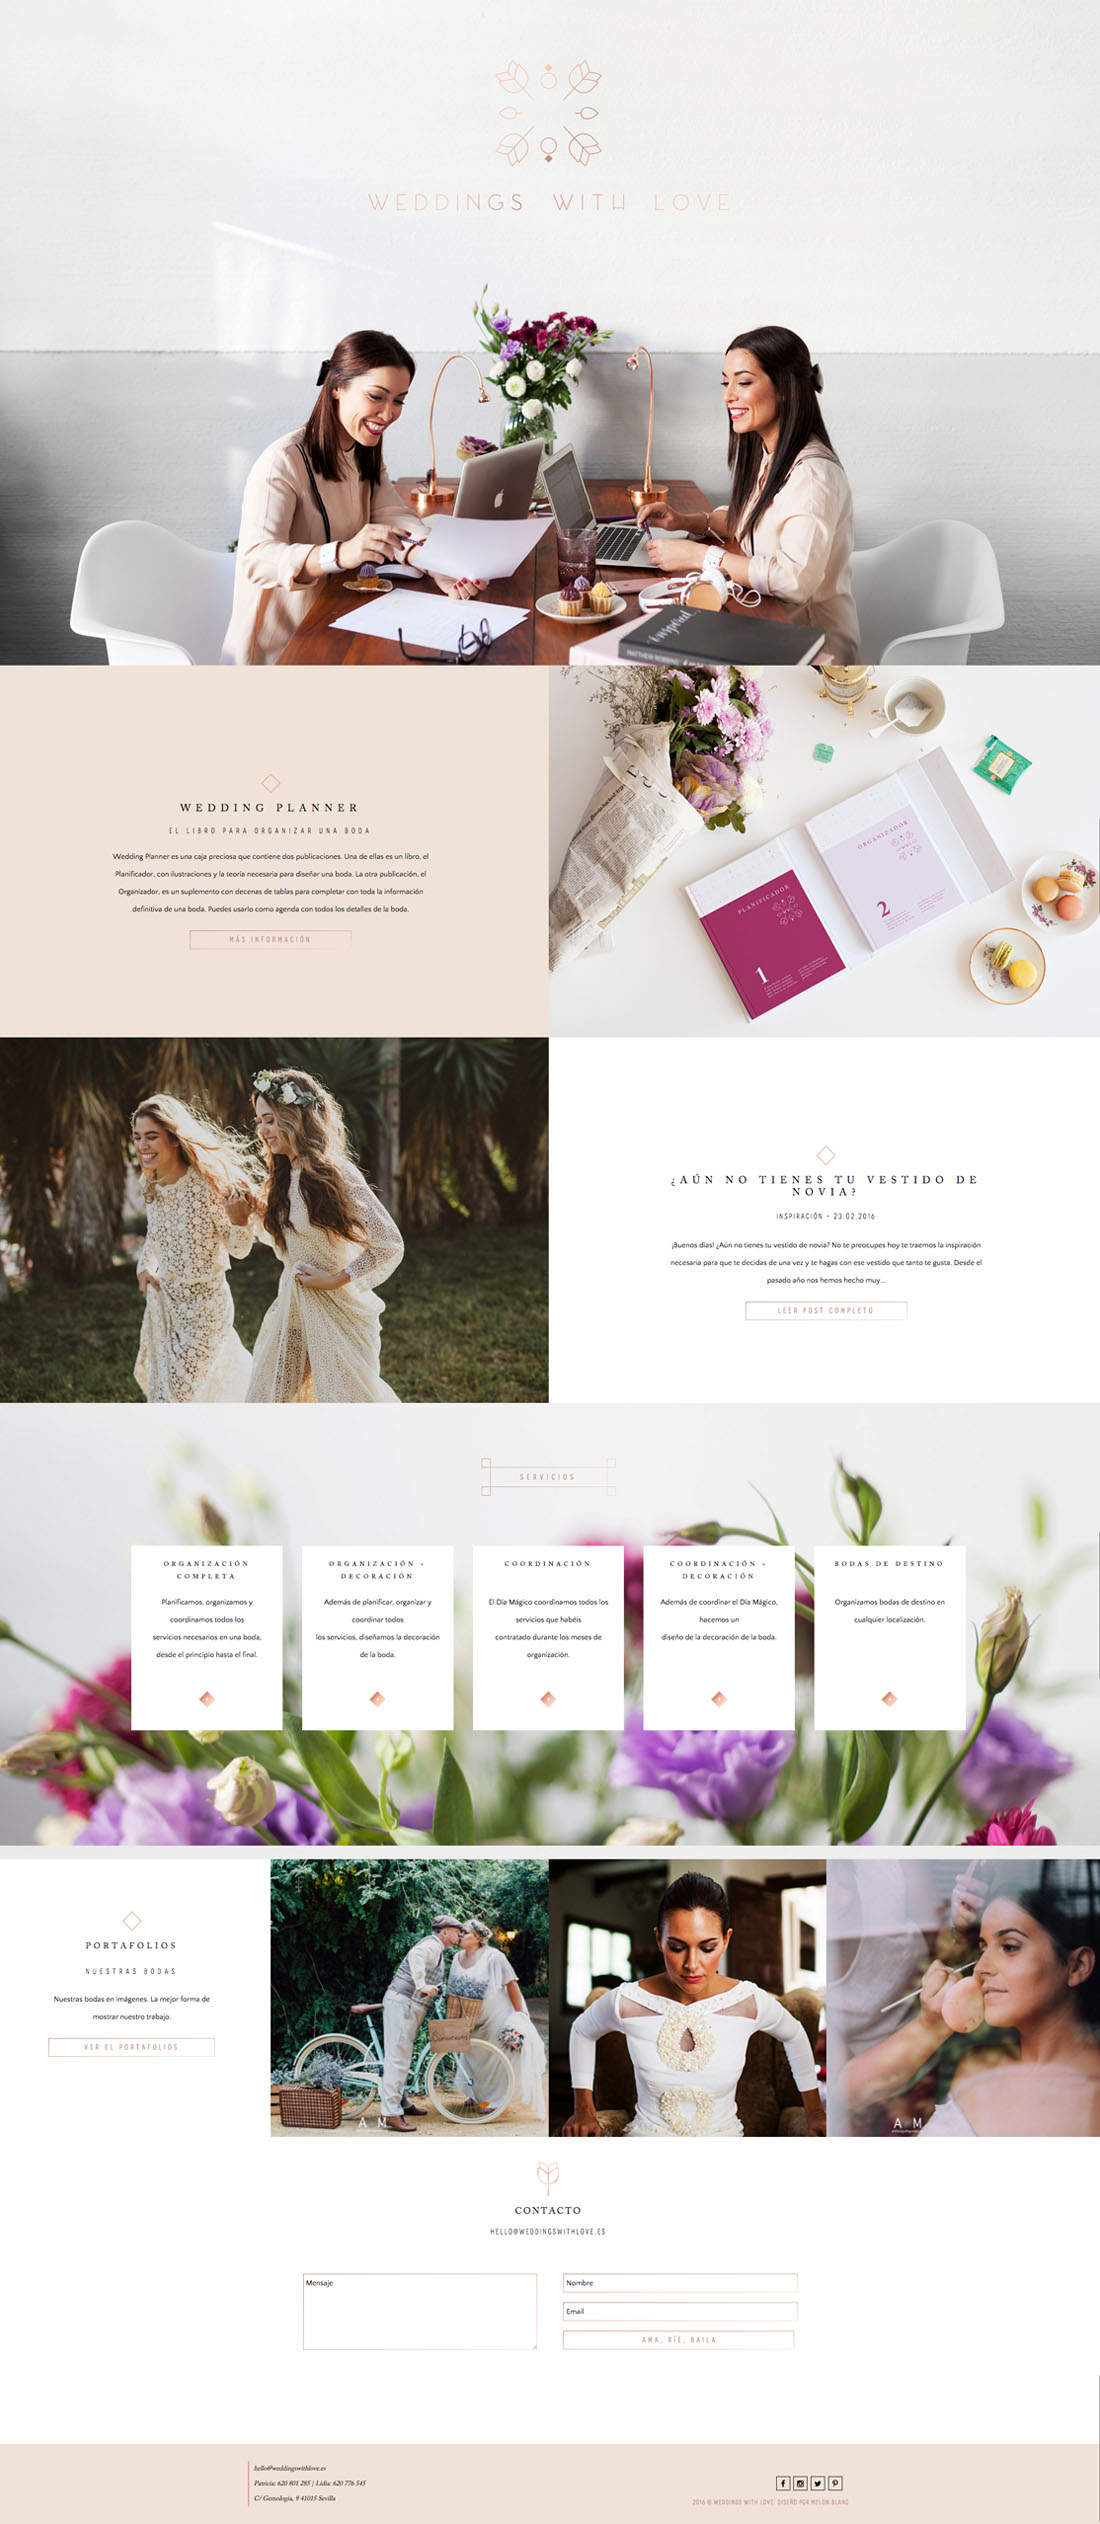 weddings-with-love-homepage